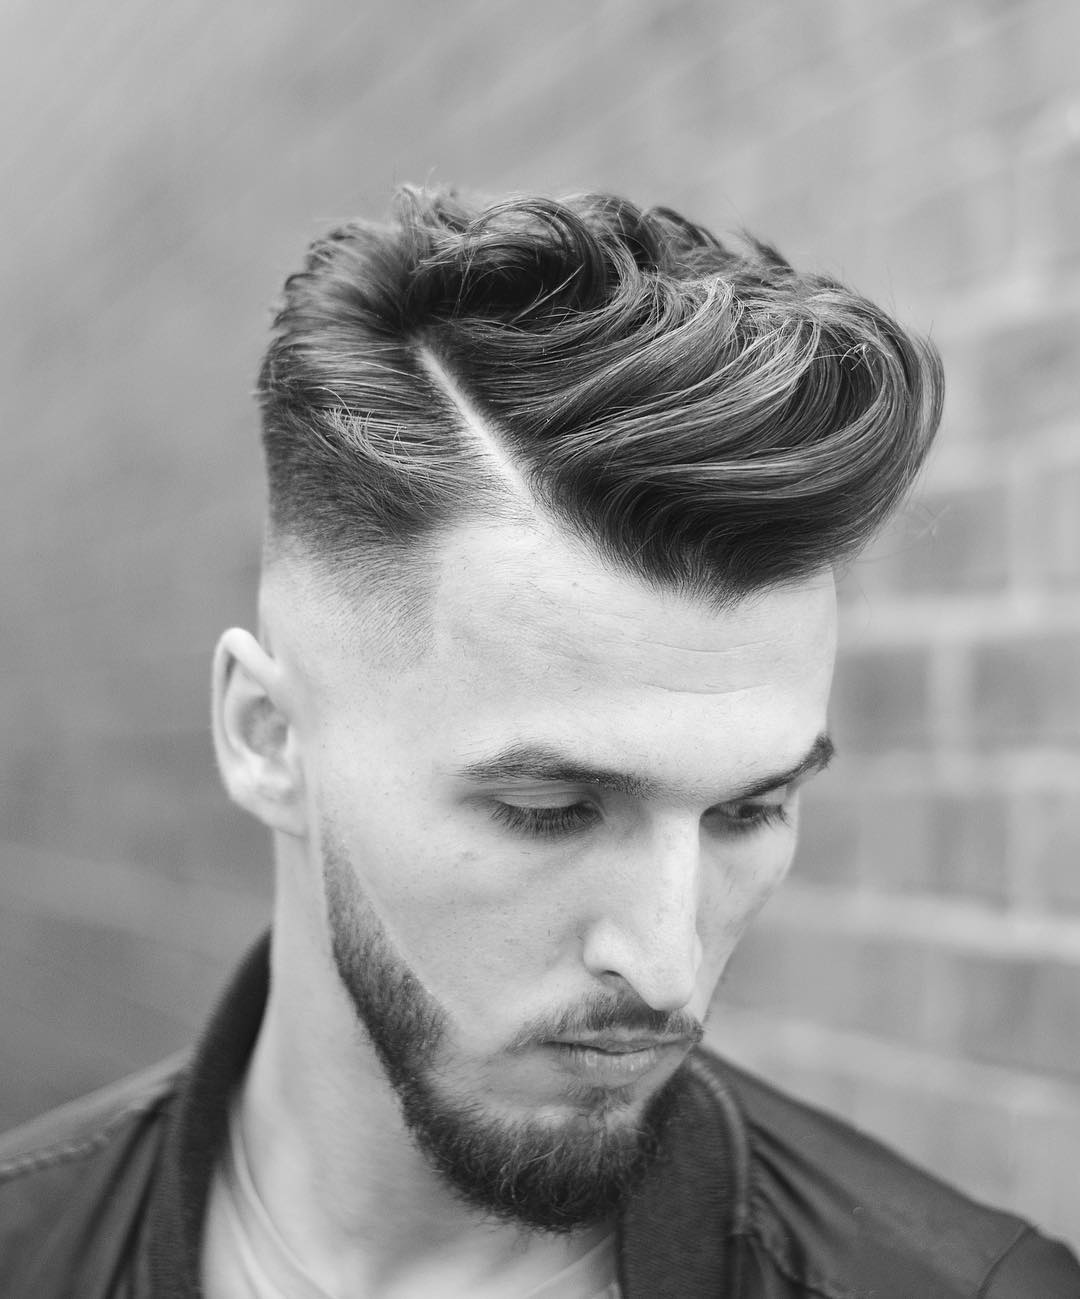 Cool side part hairstyle